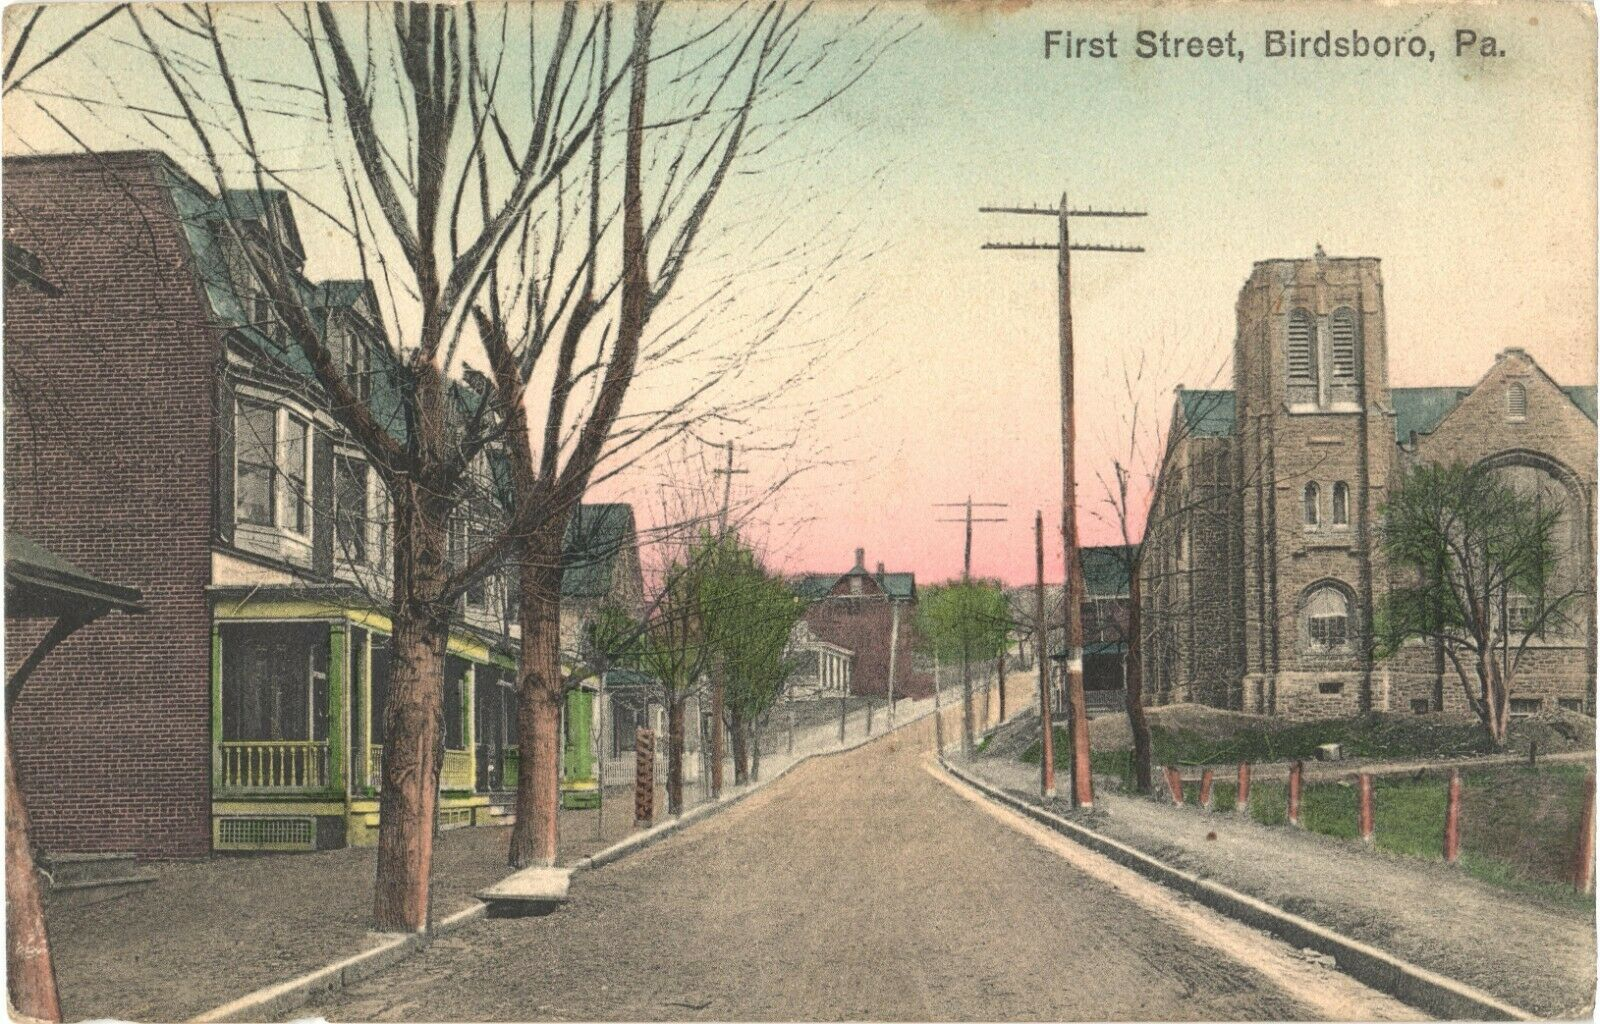 View Of Houses And Road At First Street, Birdsboro, Pennsylvania Postcard - $15.20